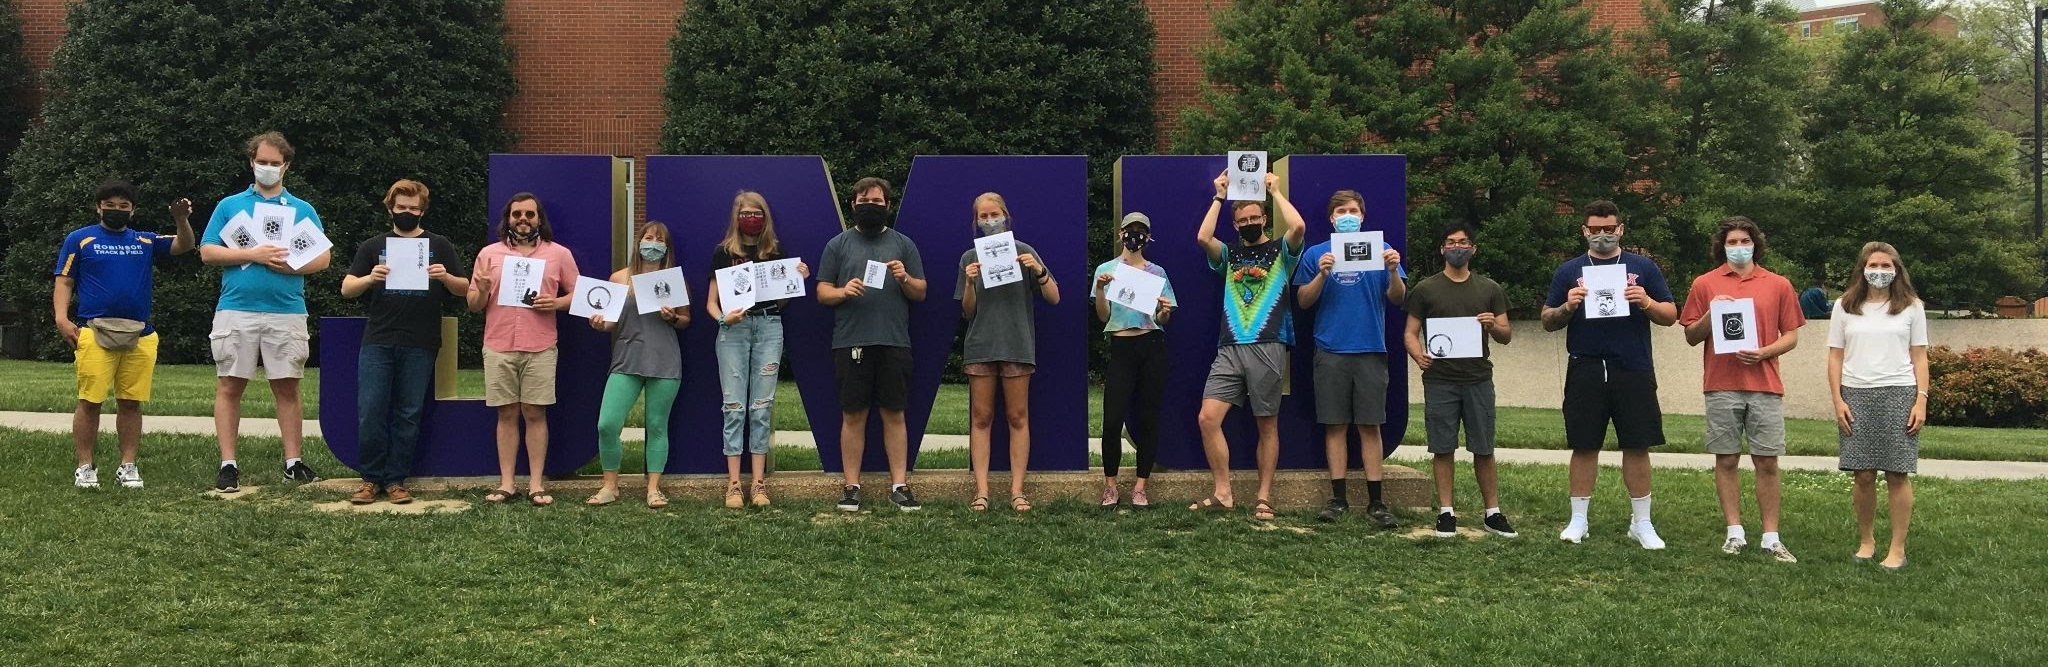 group photo of 14 students and professor holding up papers with images printed on them